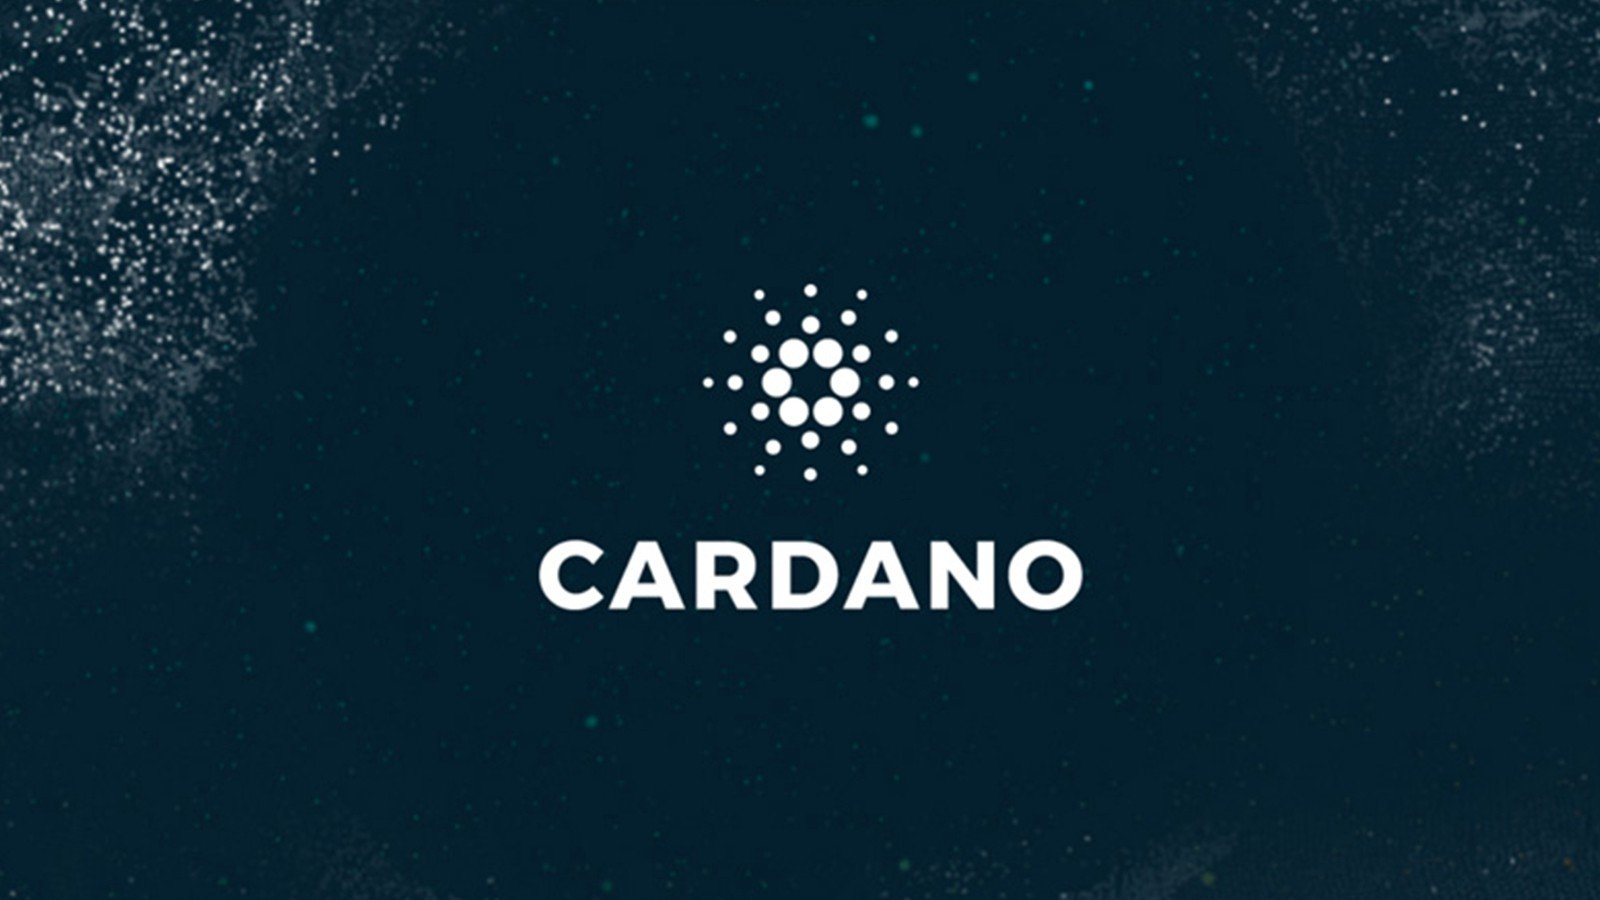 2 Reasons Cardano (ADA) Could Be Listed on Coinbase Before Stellar (XLM) 13